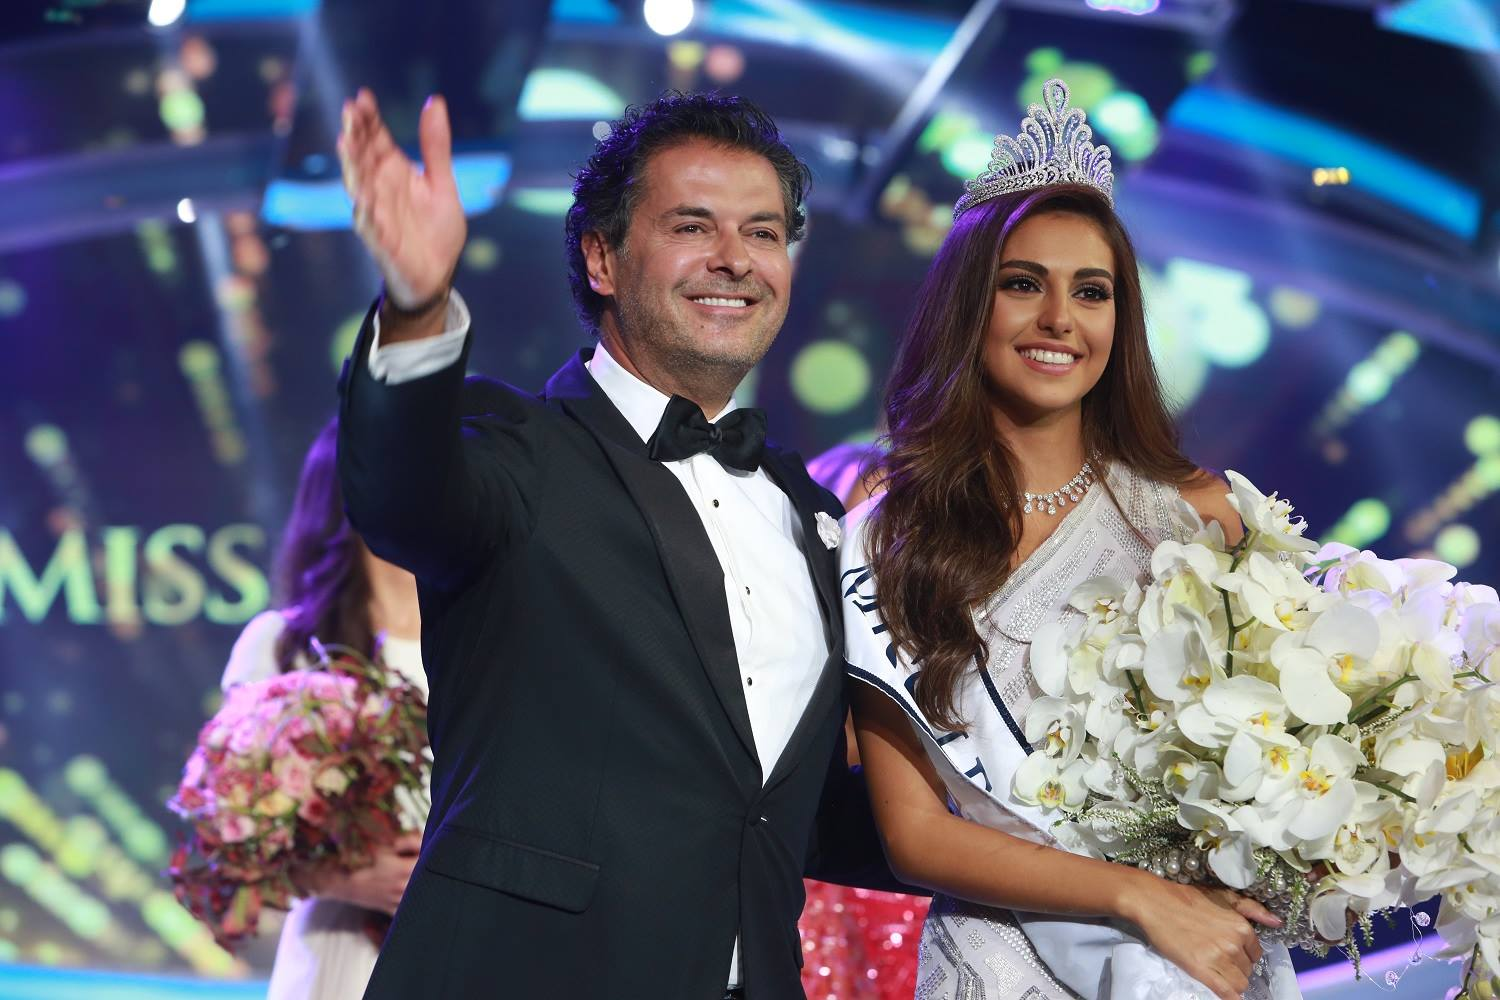 Valerie Abou Chacra crowned Miss Lebanon 2015-5